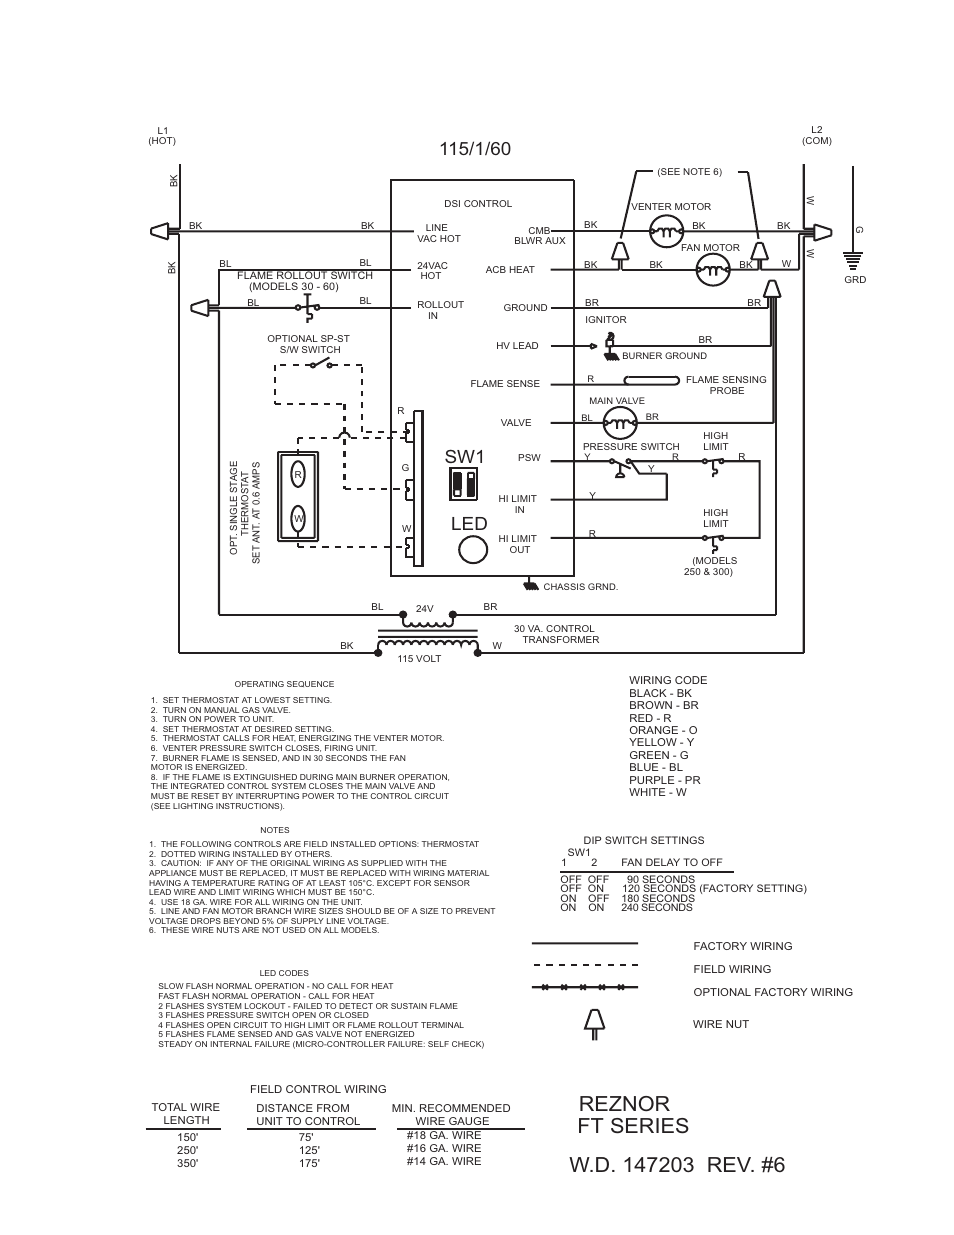 reznor ft unit installation manual page13 reznor unit heater wiring diagram reznor wiring diagram at bayanpartner.co